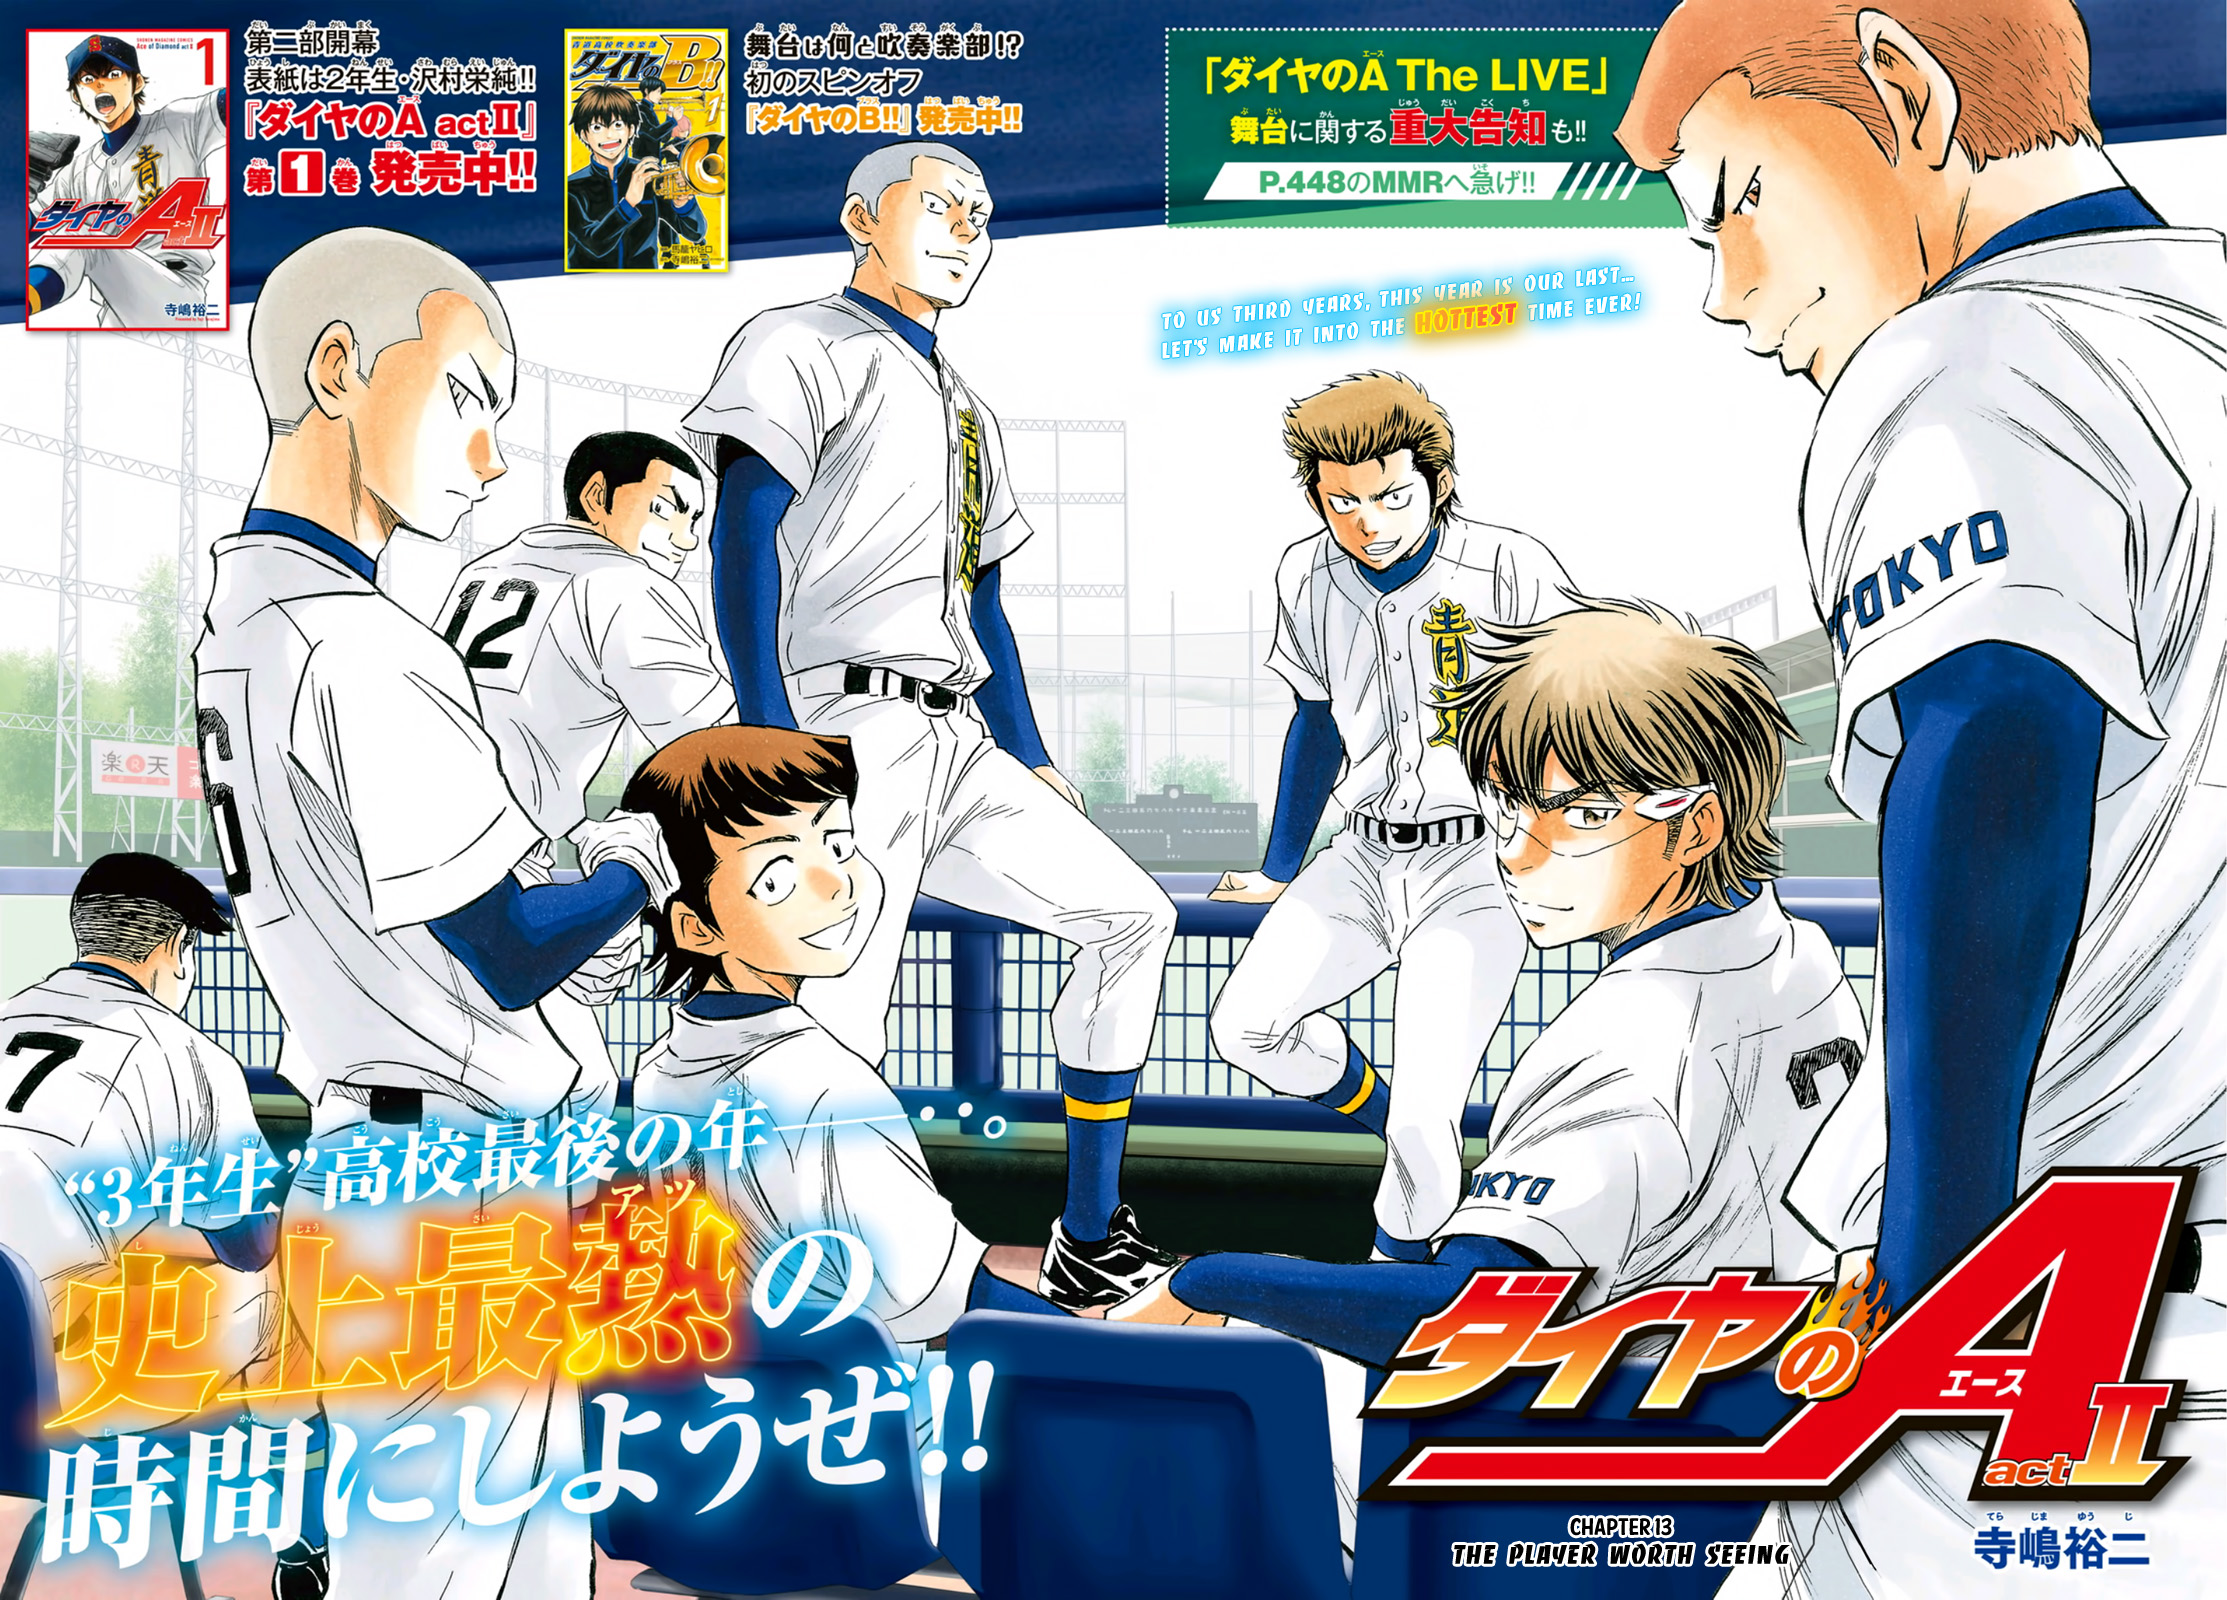 Daiya no A - Act II - Chapter 13